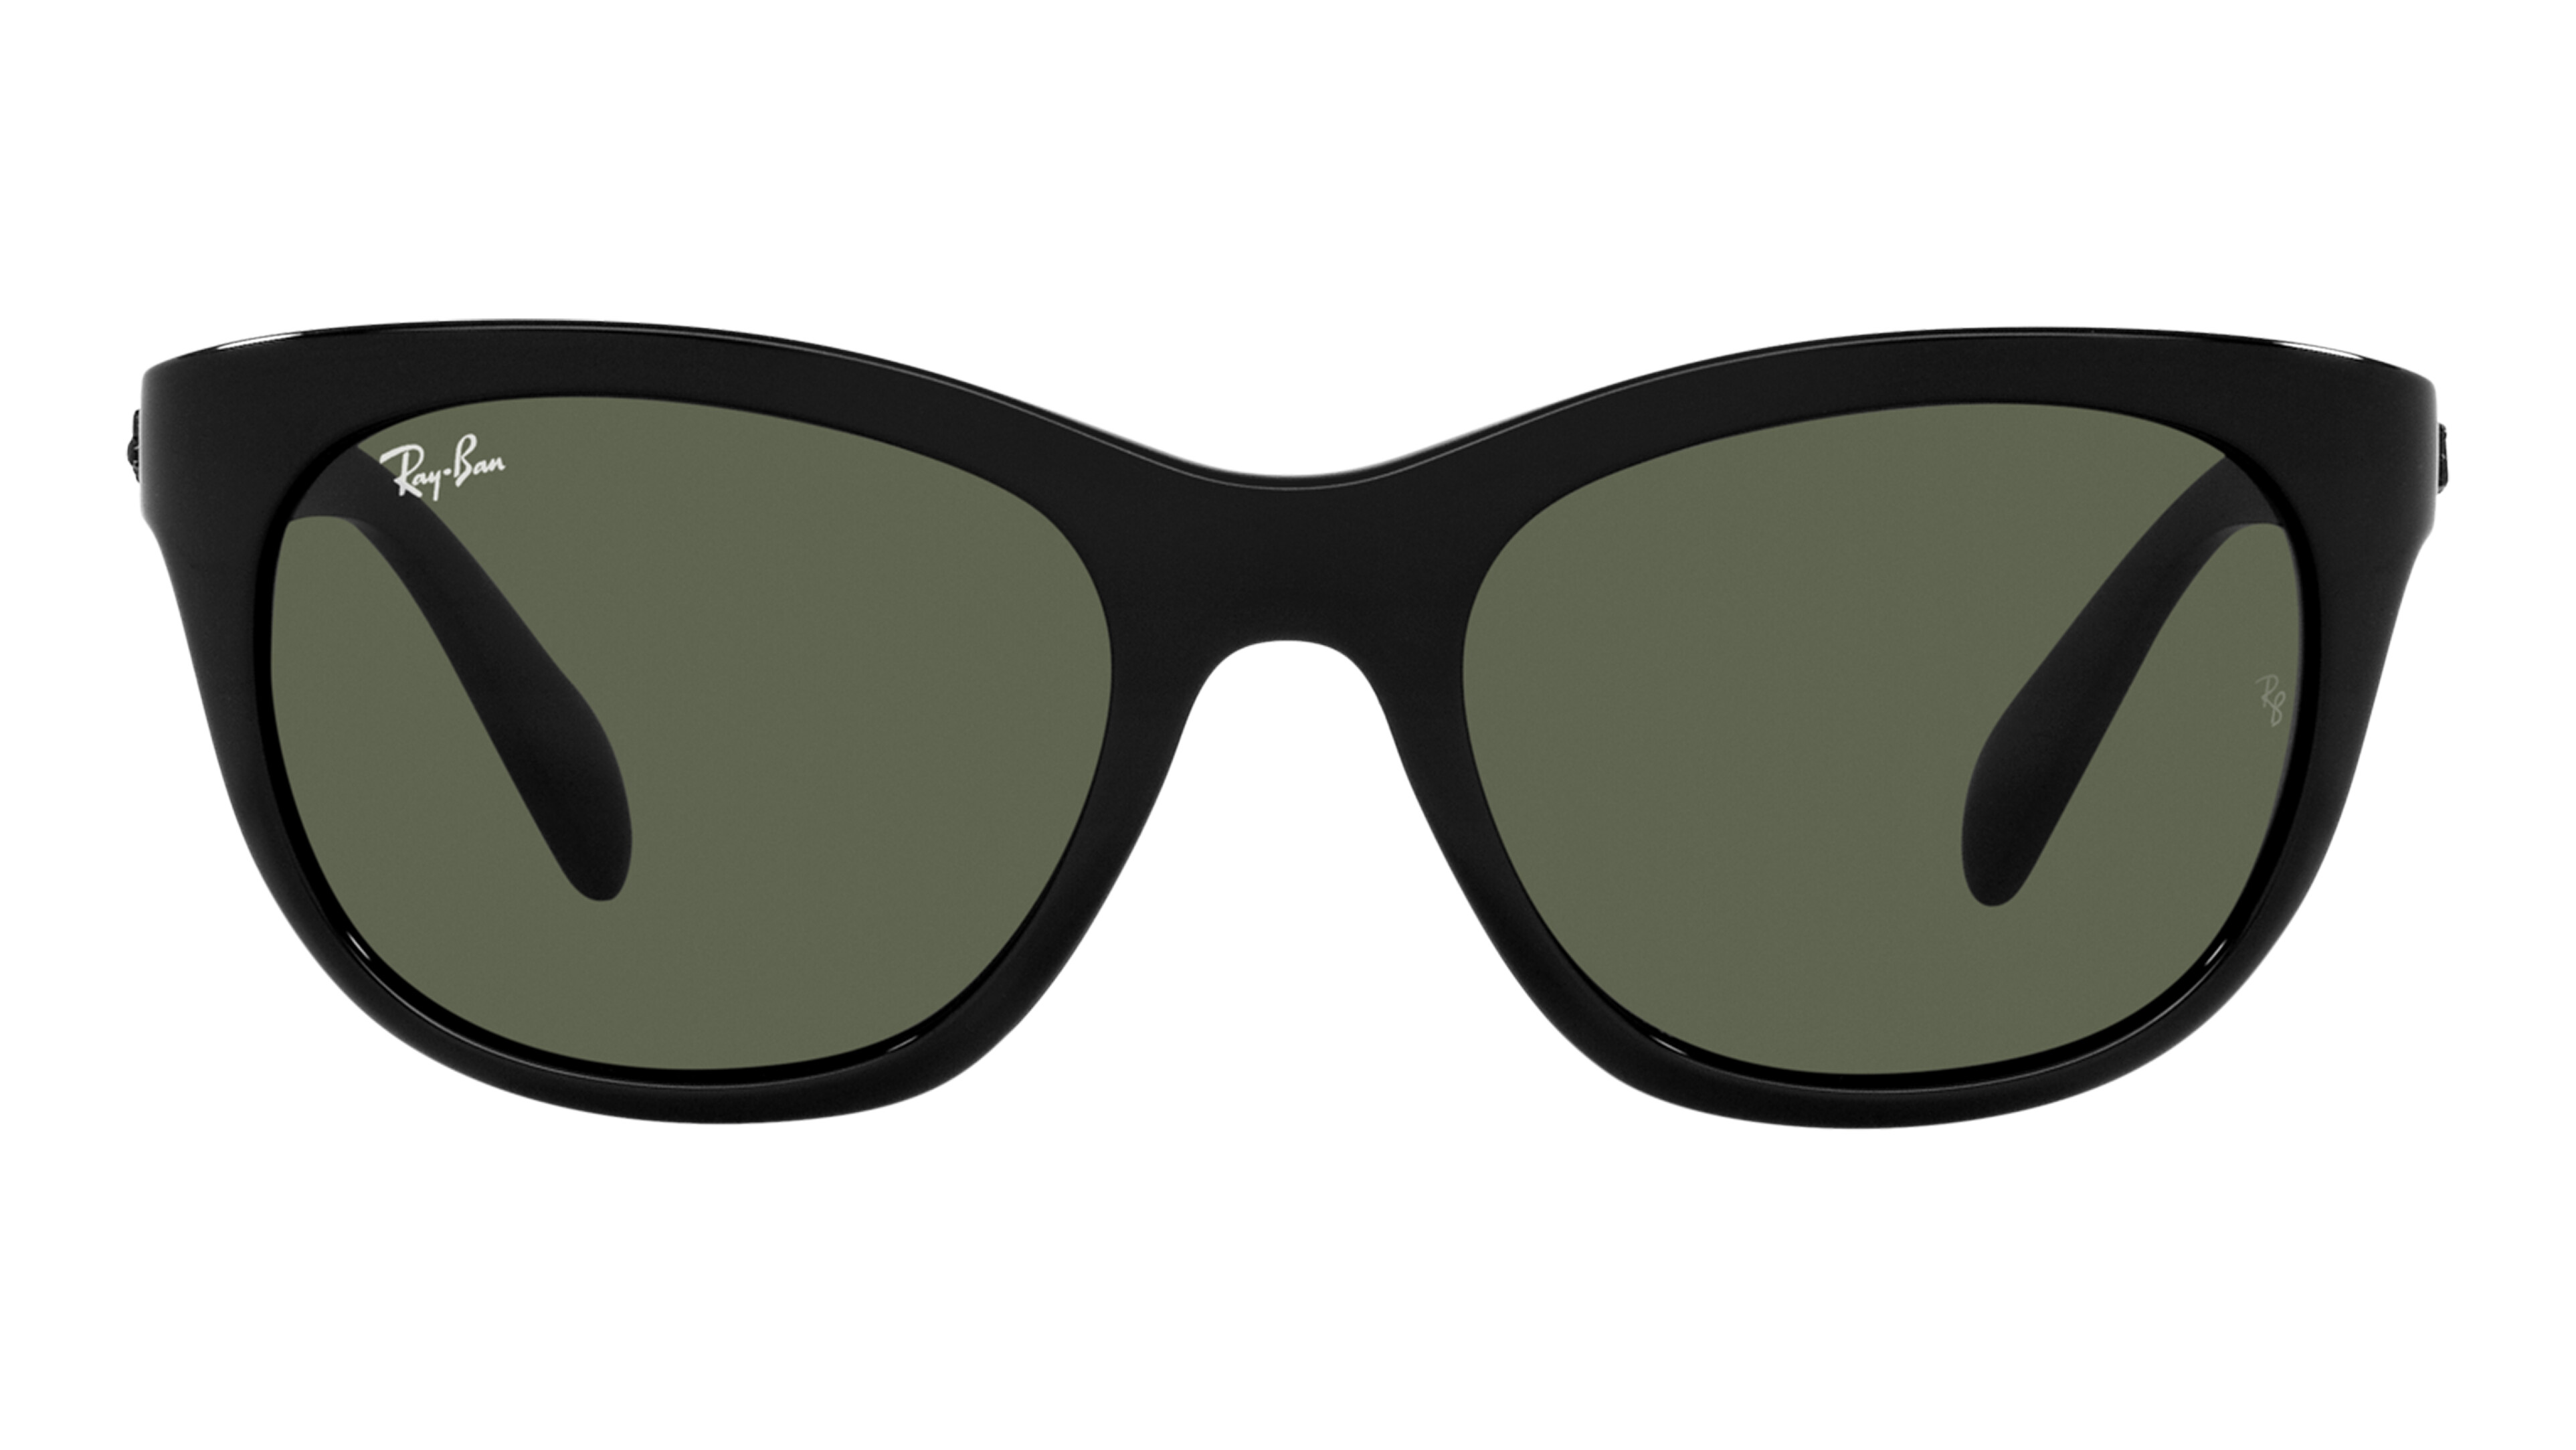 8056597463508-front-sonnenbrille-ray-ban-0rb4216-601